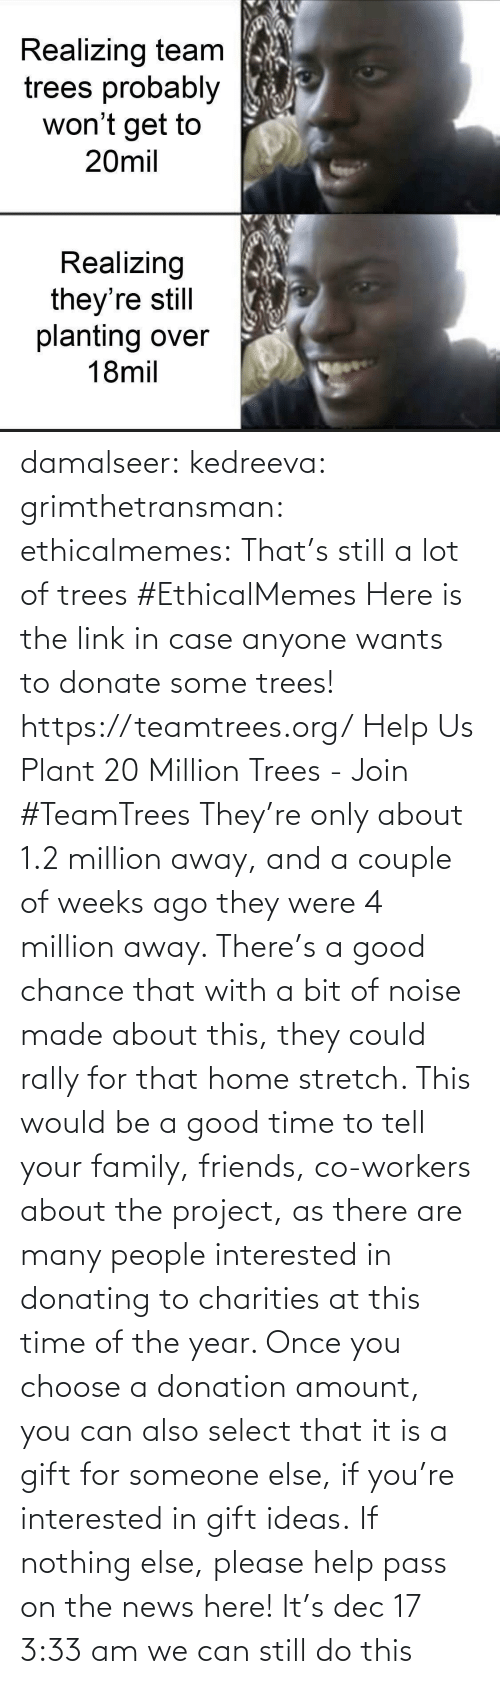 Here Is: Realizing team  trees probably  won't get to  20mil  Realizing  they're still  planting over  18mil damalseer:  kedreeva: grimthetransman:  ethicalmemes:  That's still a lot of trees #EthicalMemes   Here is the link in case anyone wants to donate some trees!  https://teamtrees.org/ Help Us Plant 20 Million Trees - Join #TeamTrees  They're only about 1.2 million away, and a couple of weeks ago they were 4 million away. There's a good chance that with a bit of noise made about this, they could rally for that home stretch. This would be a good time to tell your family, friends, co-workers about the project, as there are many people interested in donating to charities at this time of the year. Once you choose a donation amount, you can also select that it is a gift for someone else, if you're interested in gift ideas. If nothing else, please help pass on the news here!    It's dec 17 3:33 am we can still do this